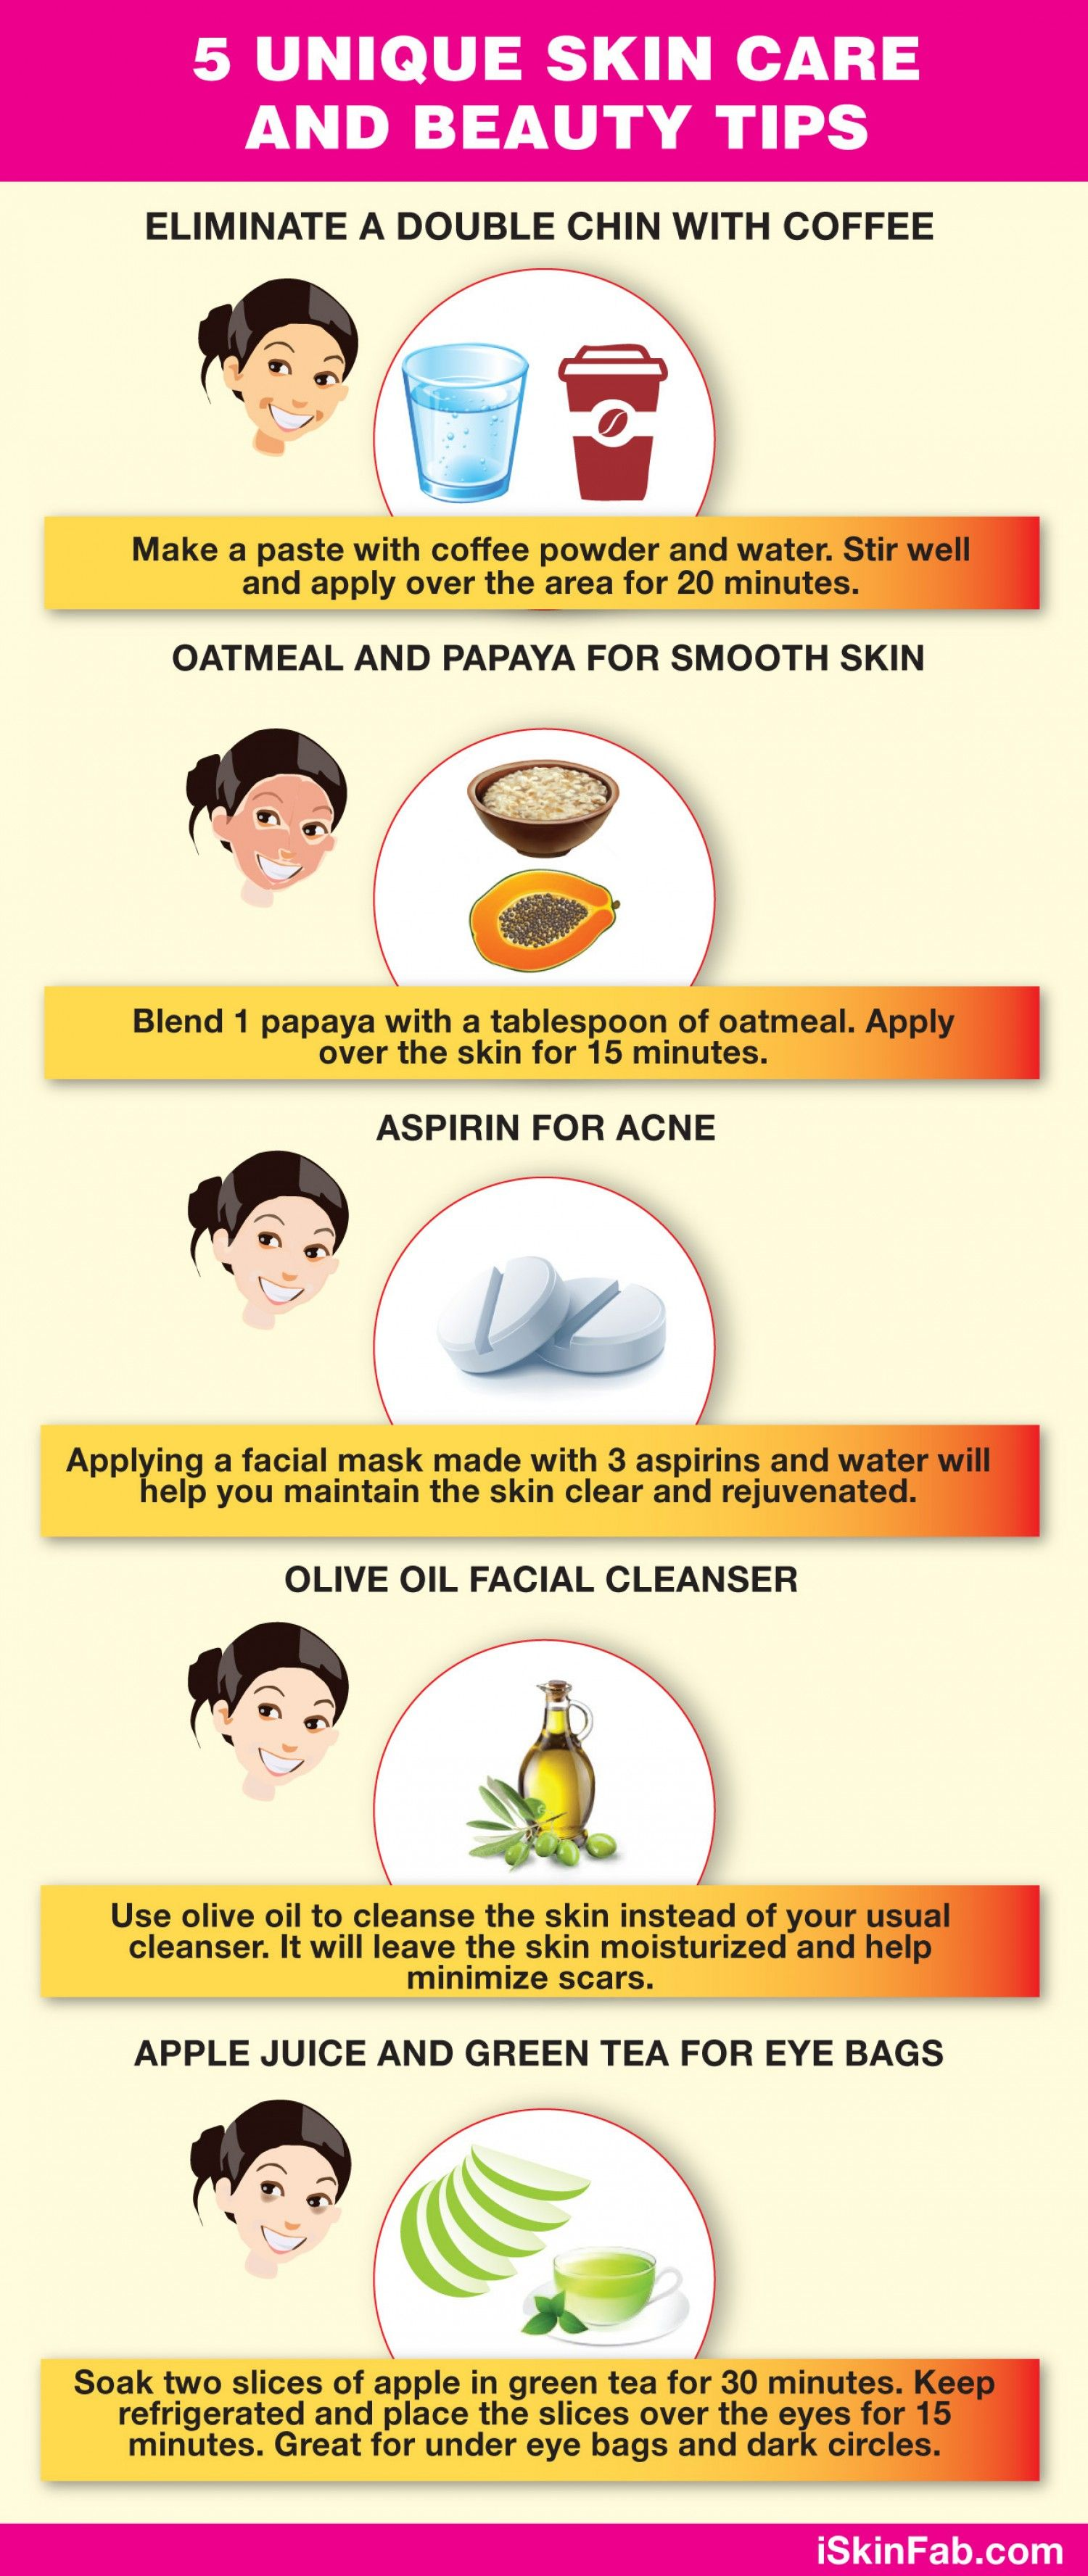 Five Unique Skin Care And Beauty Tips.  Skin care tips, Natural